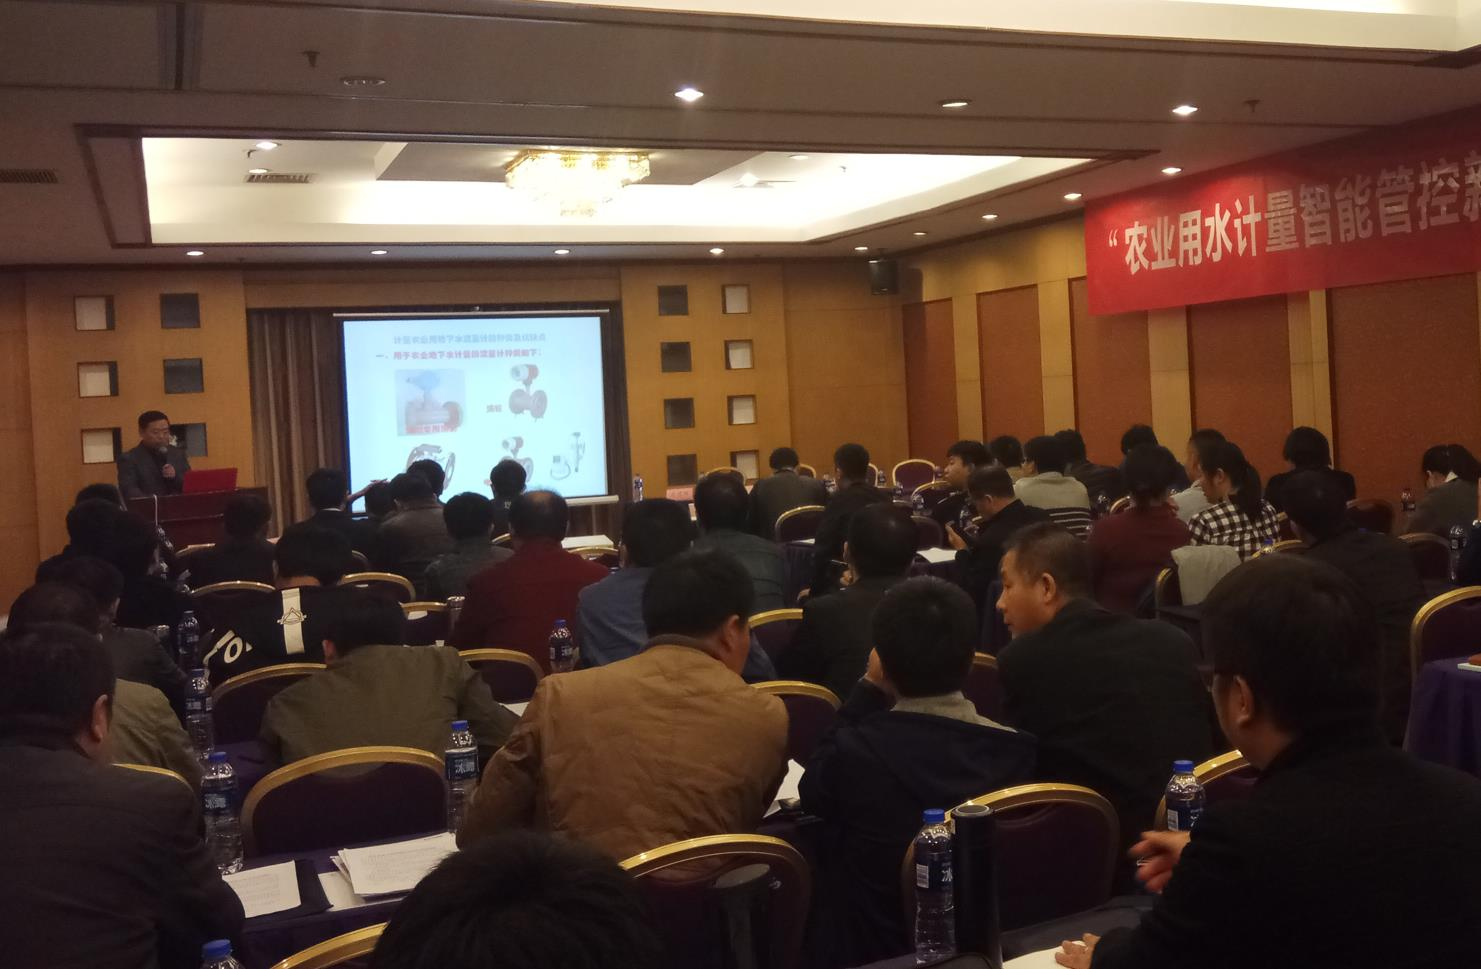 Mr. Liu attended the seminar on new technologies for agricultural water measurement and intelligent management and control